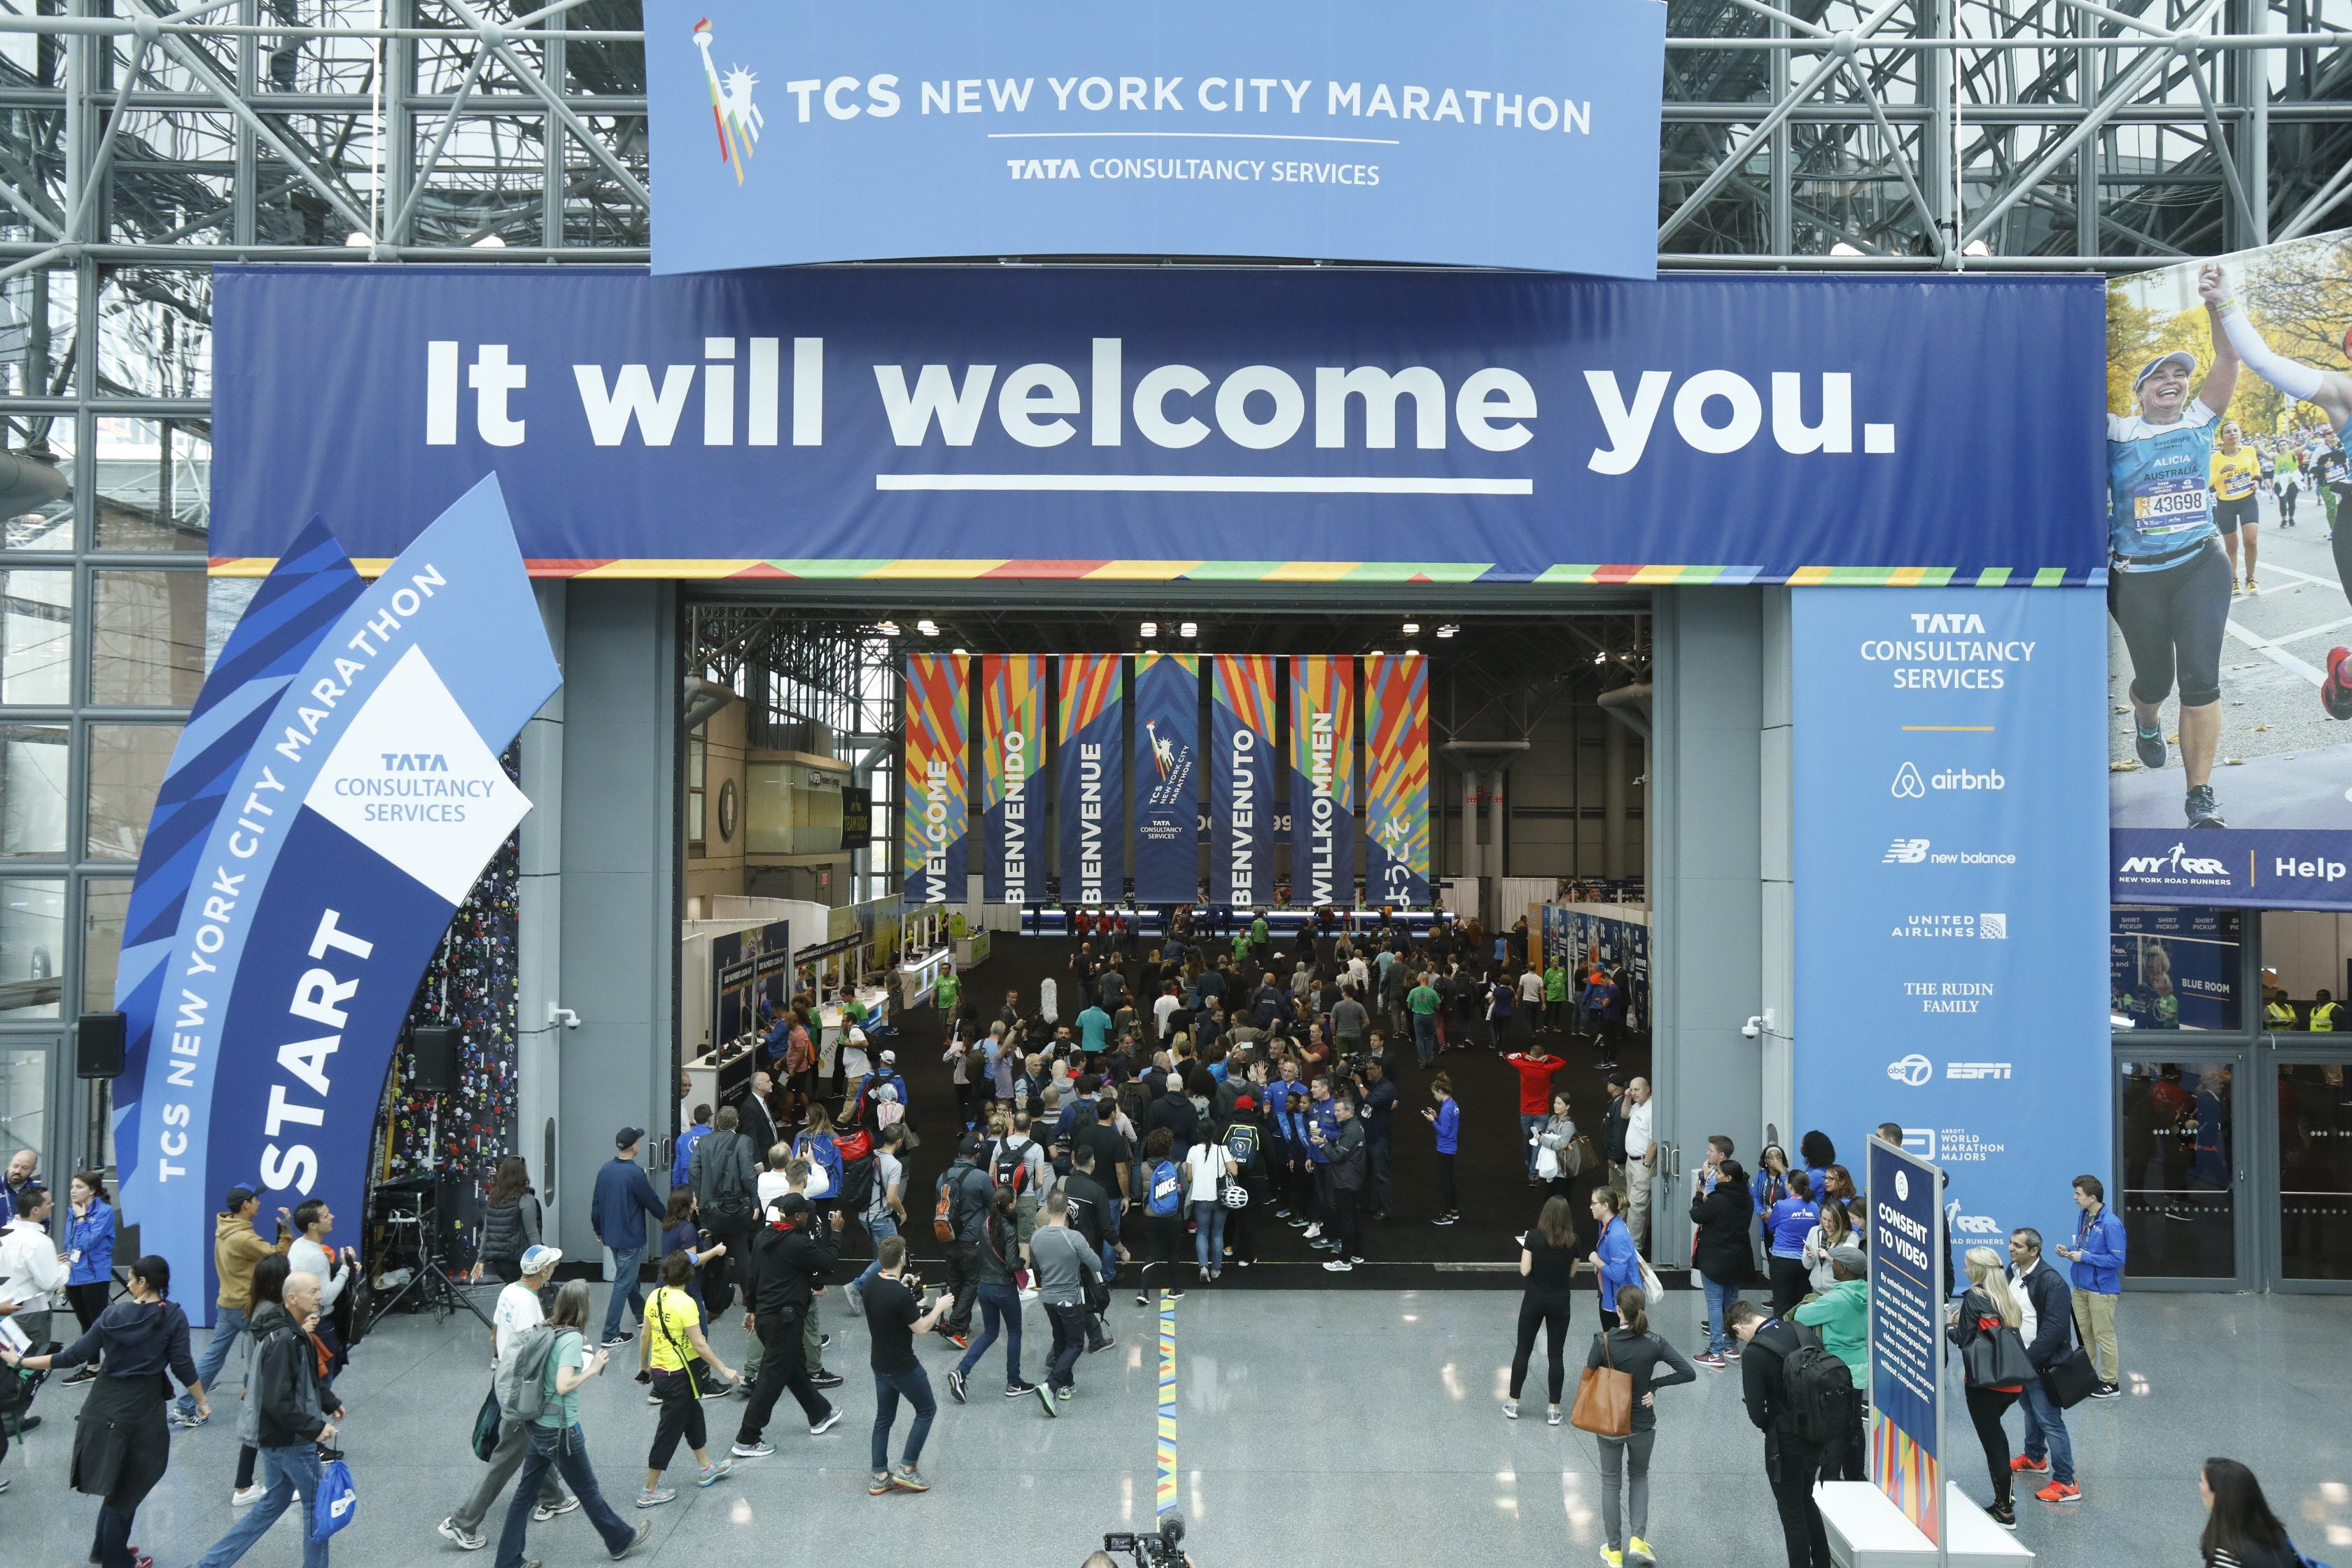 Visitors entering the TCS New York City Marathon Expo at the Javits Center in Manhattan